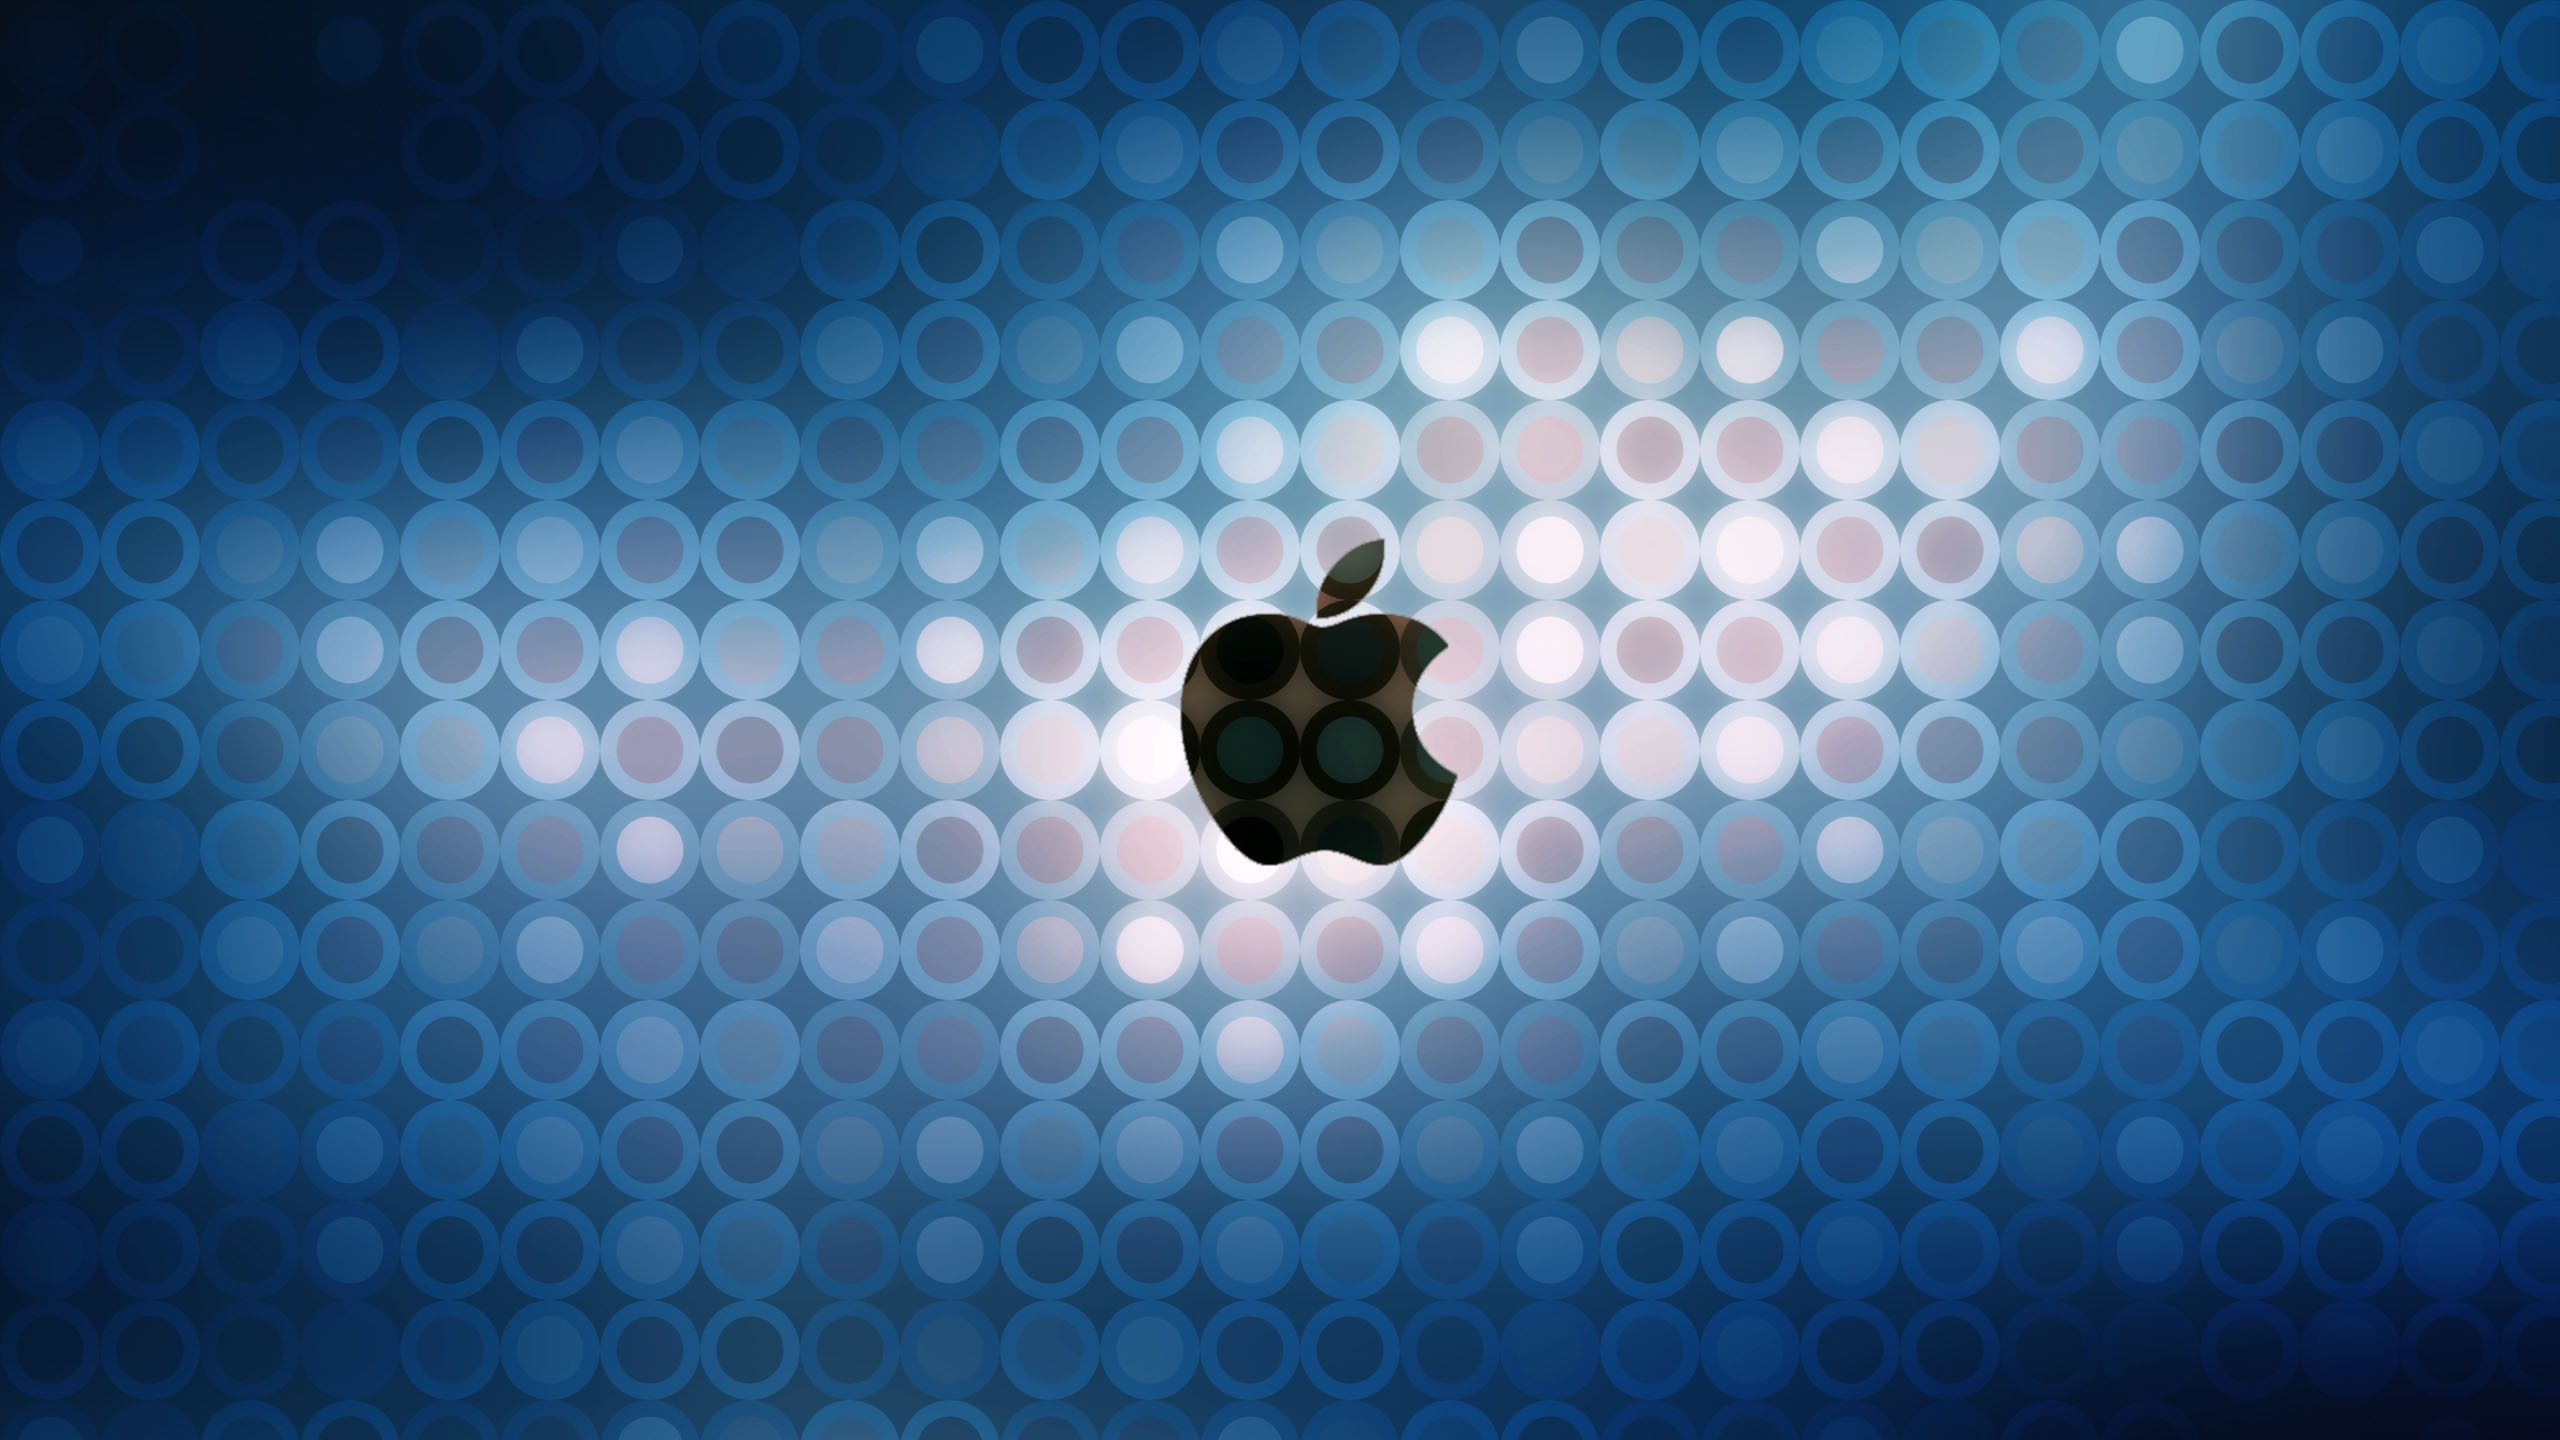 Cool HD Wallpapers For Mac - Wallpaper Cave